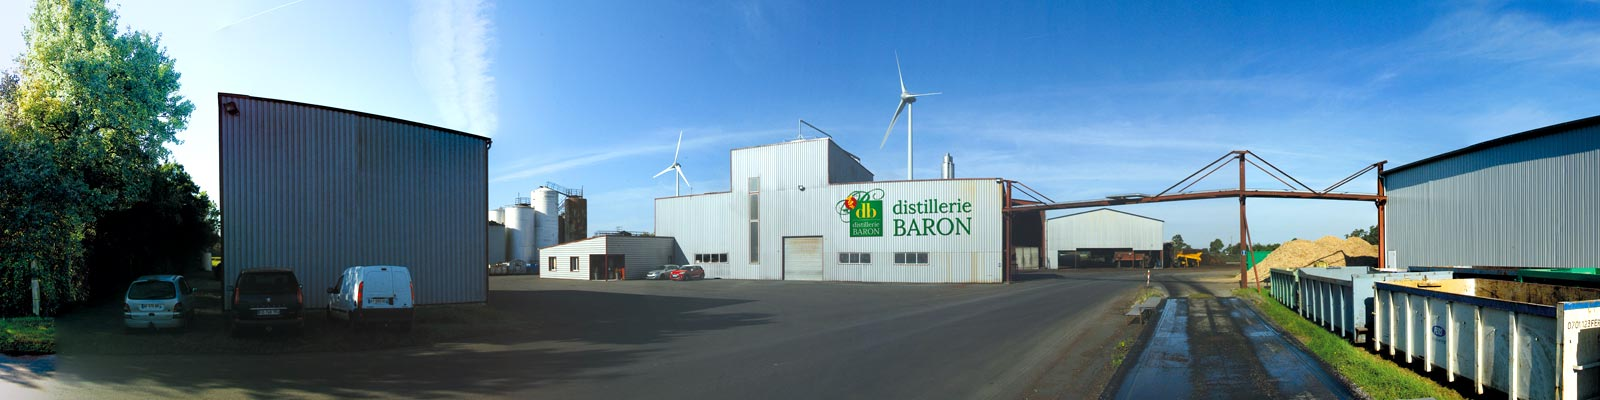 Distillerie Baron in heart of the Nantes vineyards